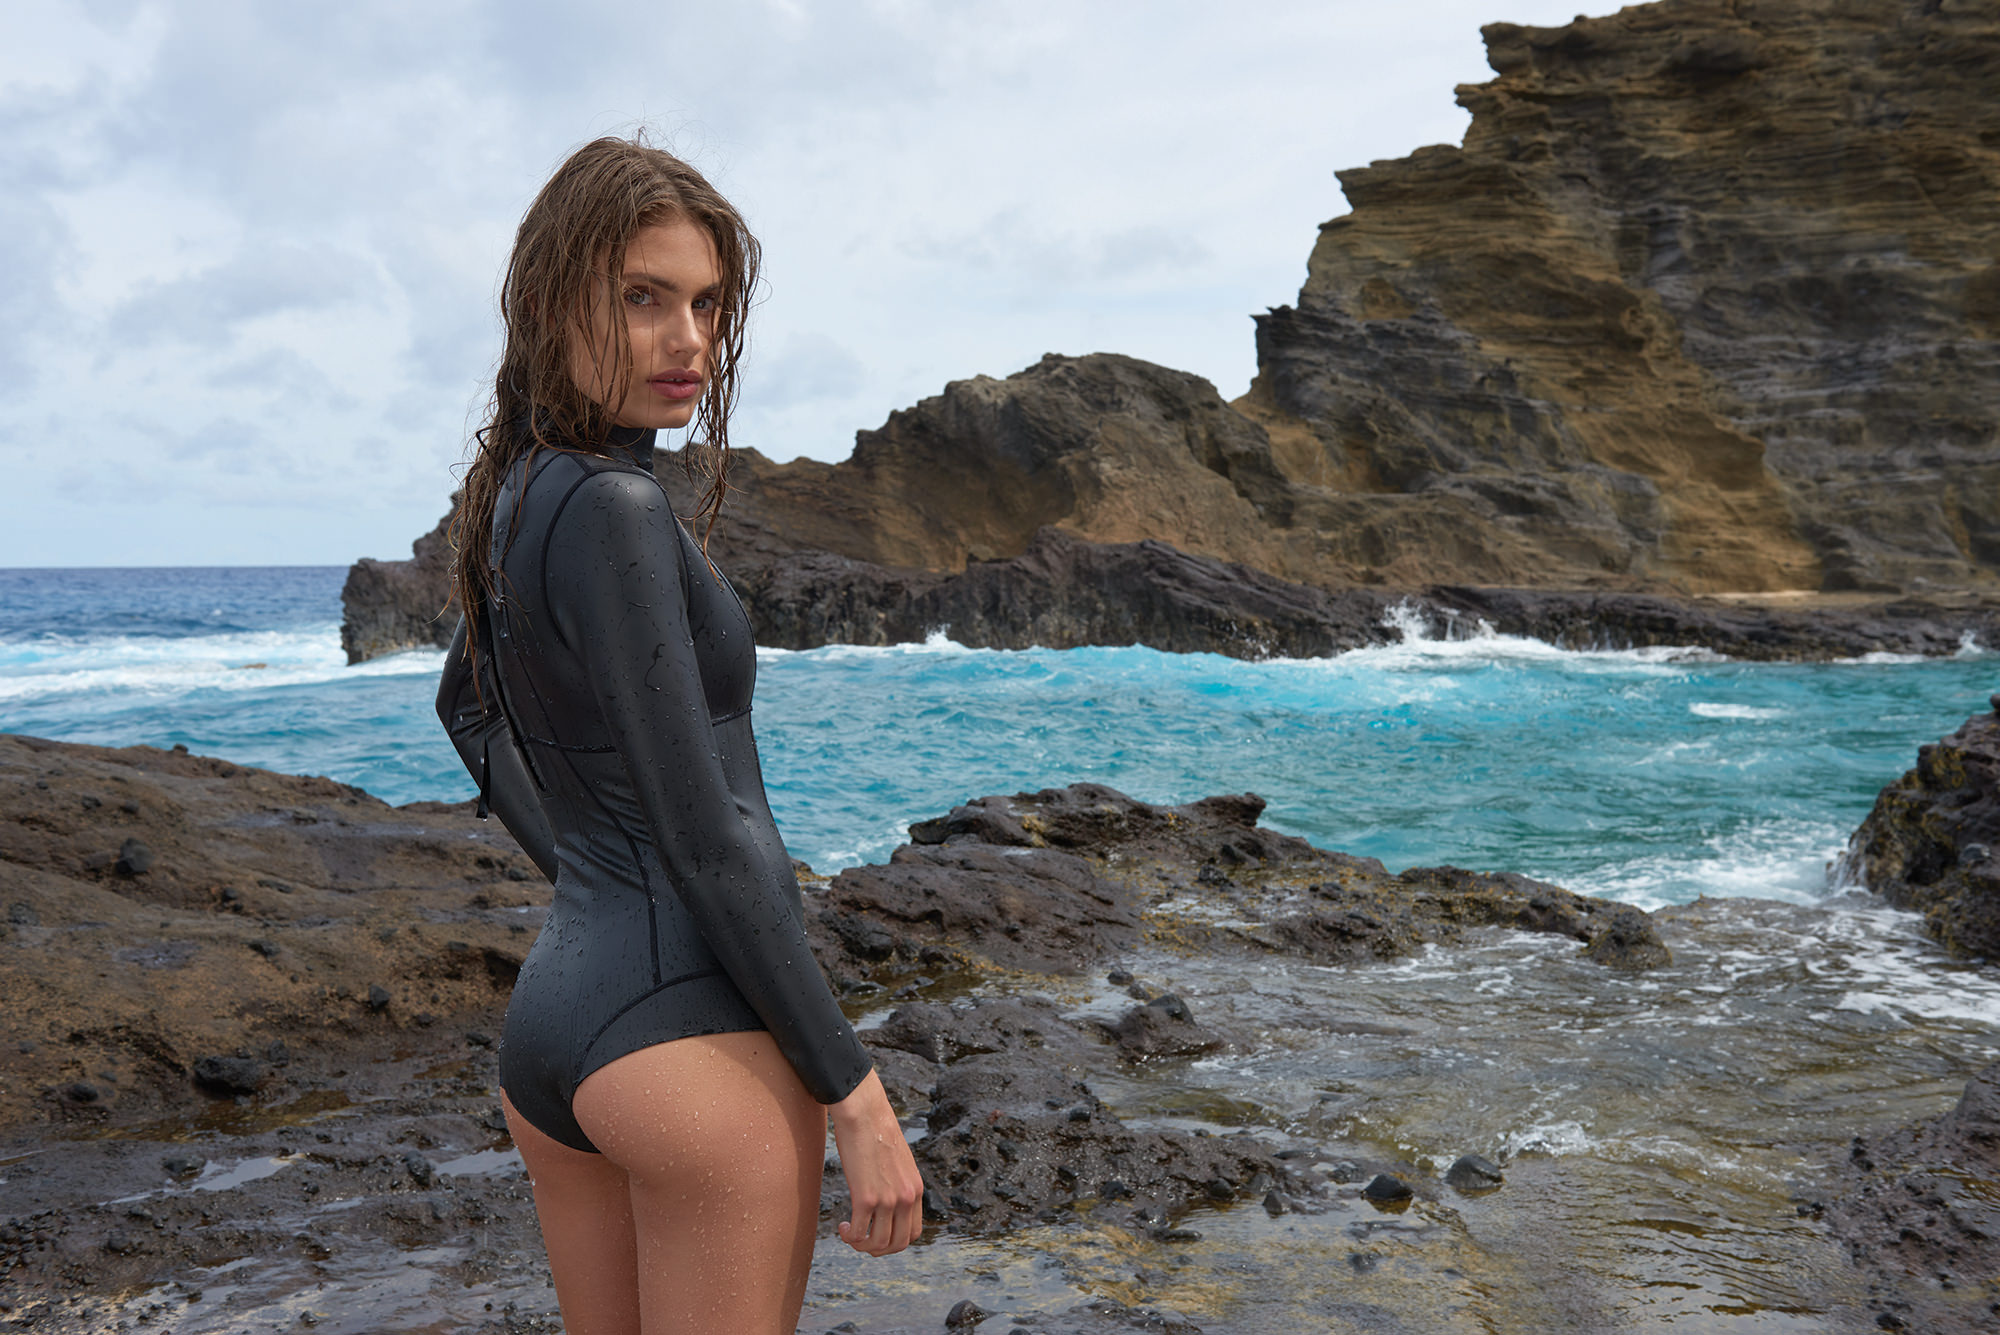 surf dating websites Browse members based on whether they prefer to surf hawaii, baja,  if you aren't interested in dating, you can use surfing passions solely as a surfer focused.